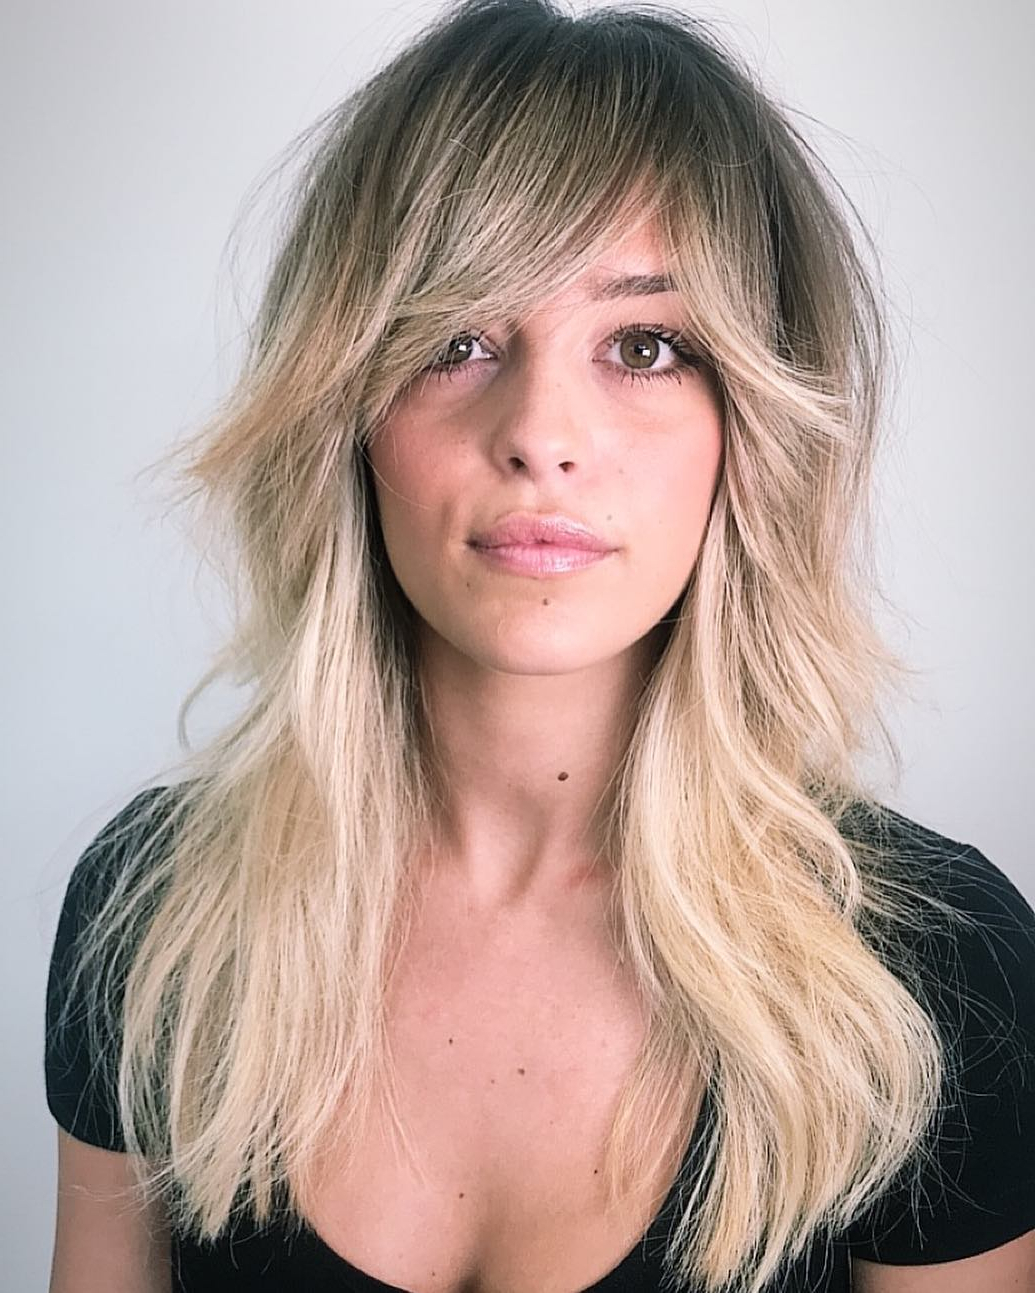 The Most Instagrammable Hairstyles With Bangs In 2019 In Pink Shaggy Haircuts (View 18 of 20)